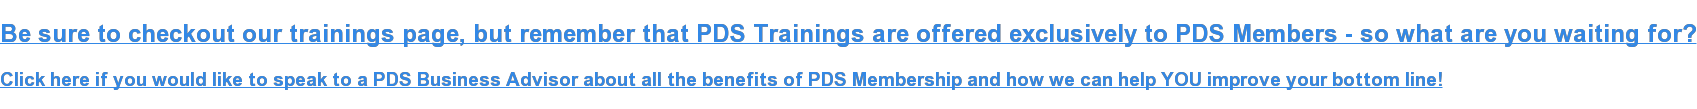 Be sure to checkout our trainings page, but remember that PDS Trainings are  offered exclusively to PDS Members - so what are you waiting for?  Click here if you would like to speak to a PDS Business Advisor about all the  benefits of PDS Membership and how we can help YOU improve your bottom line!